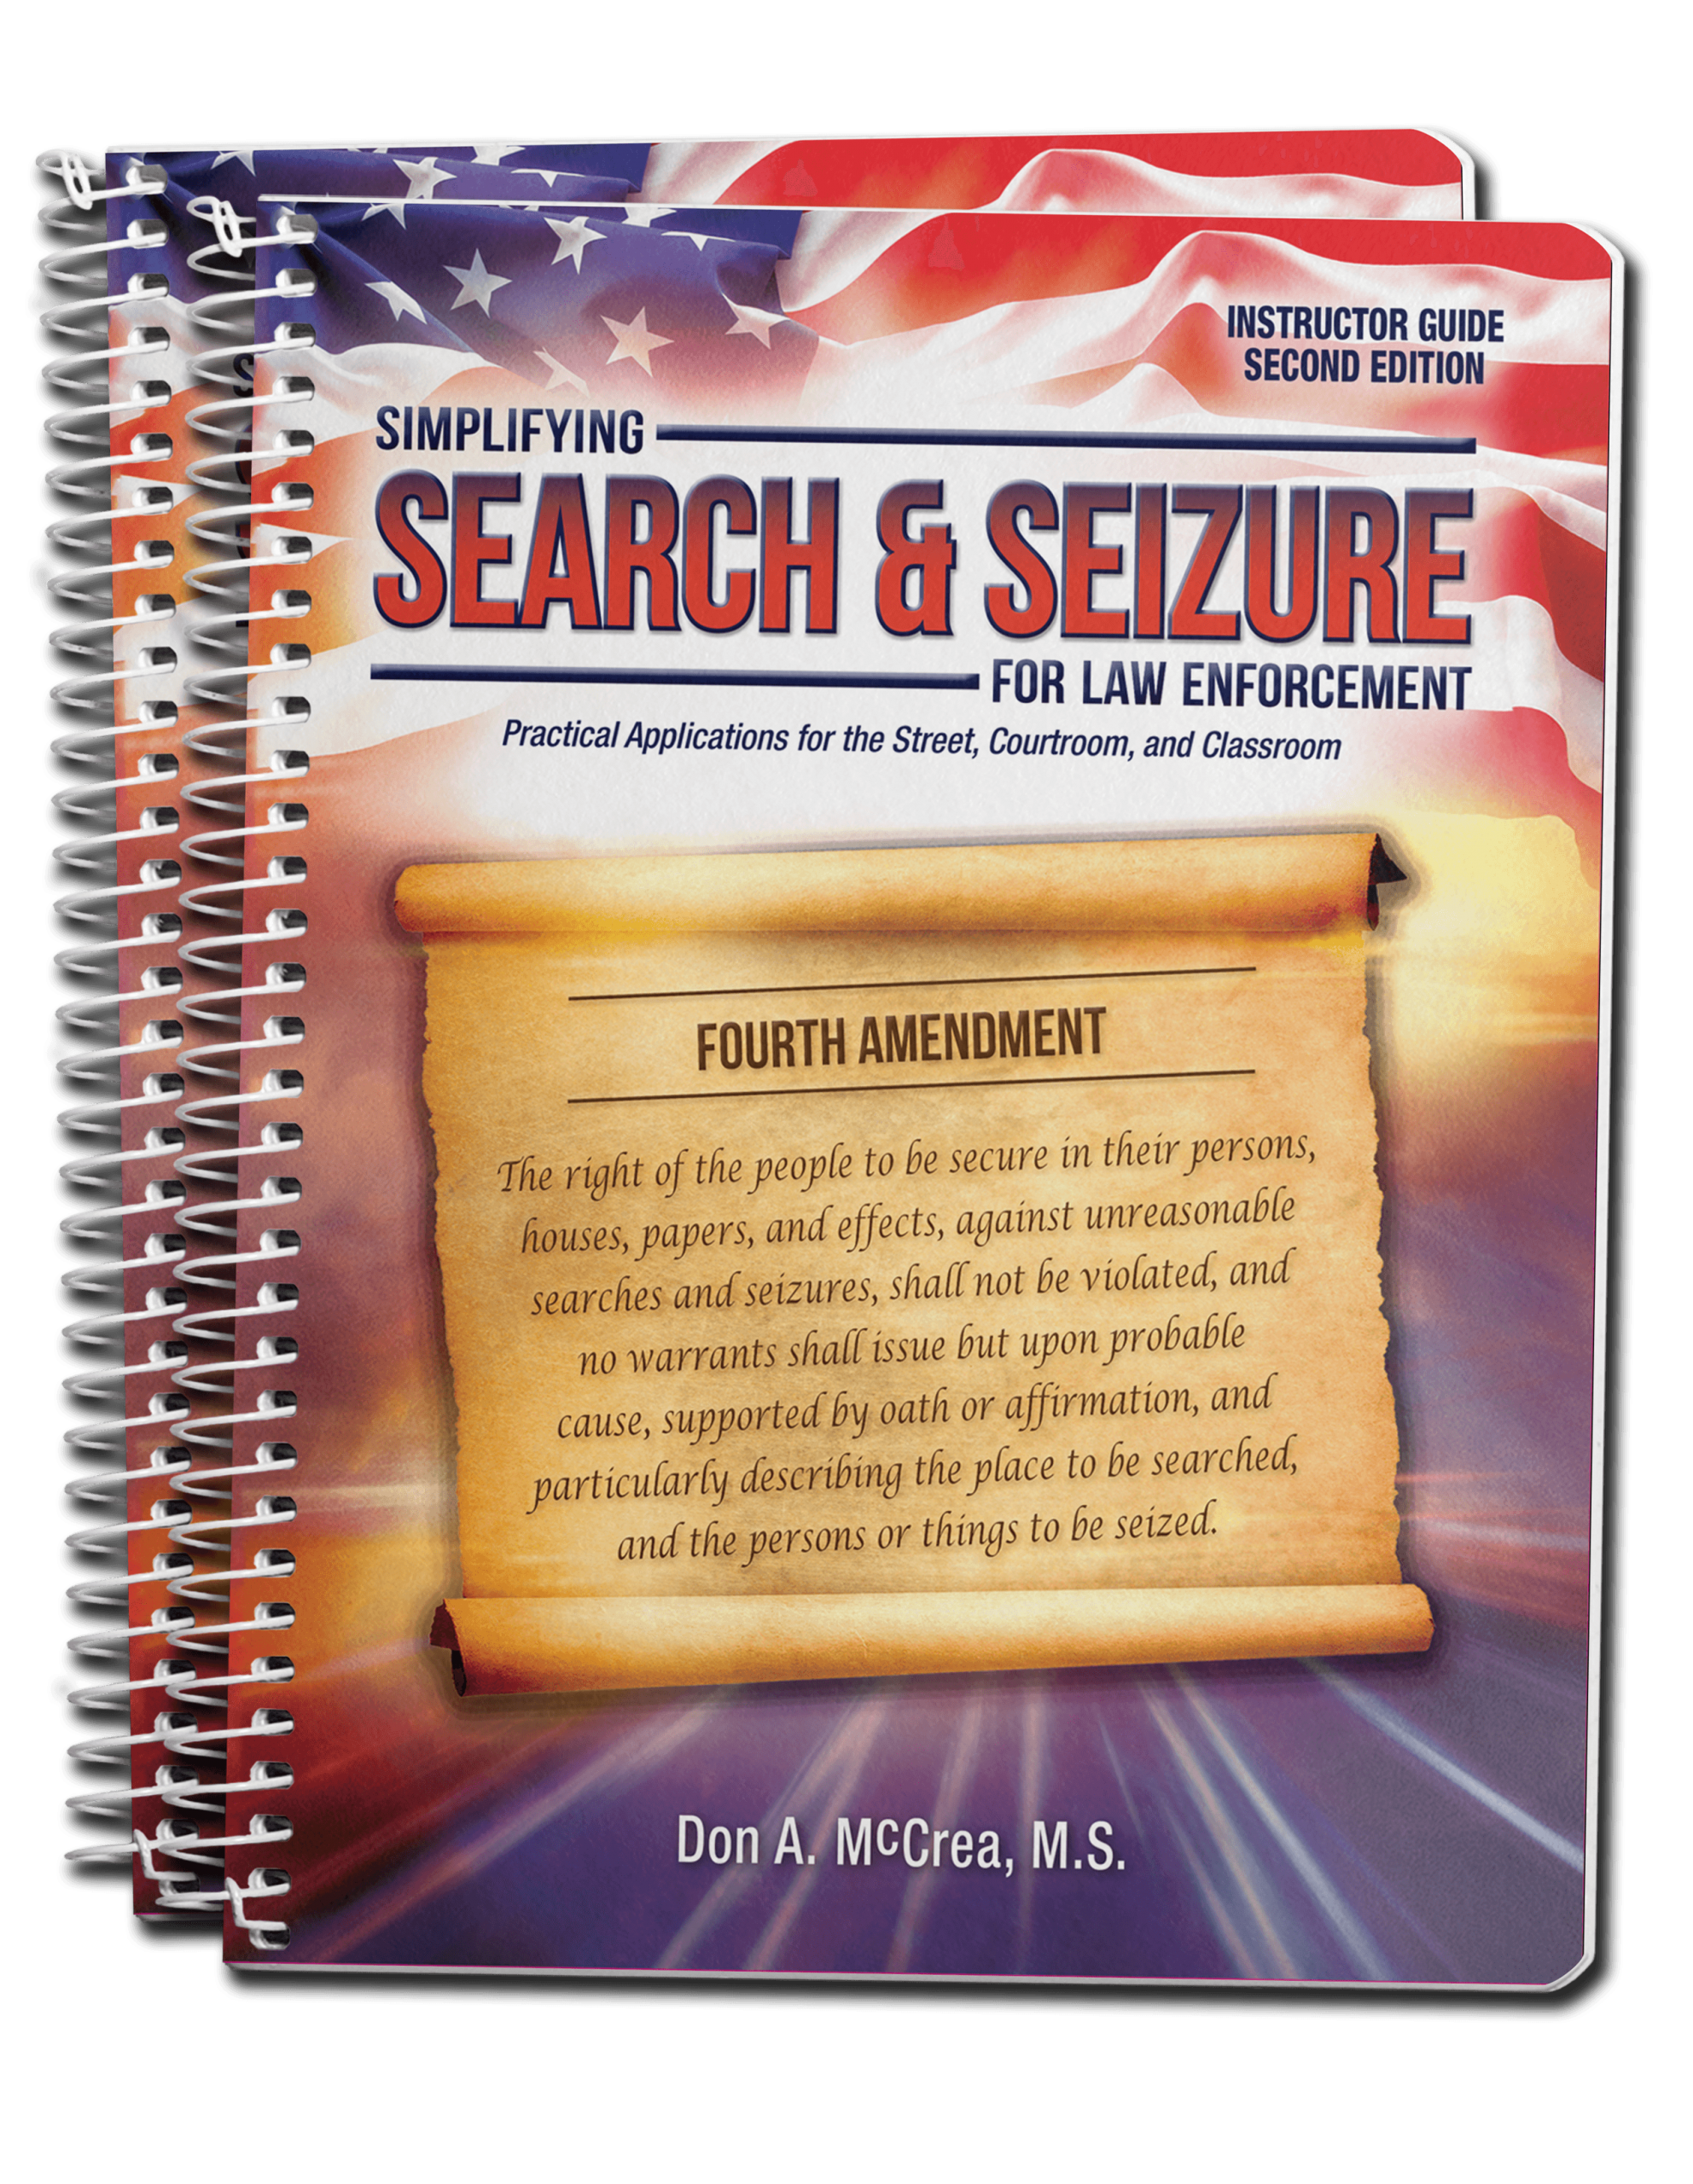 Search & Seizure Instructors Guide